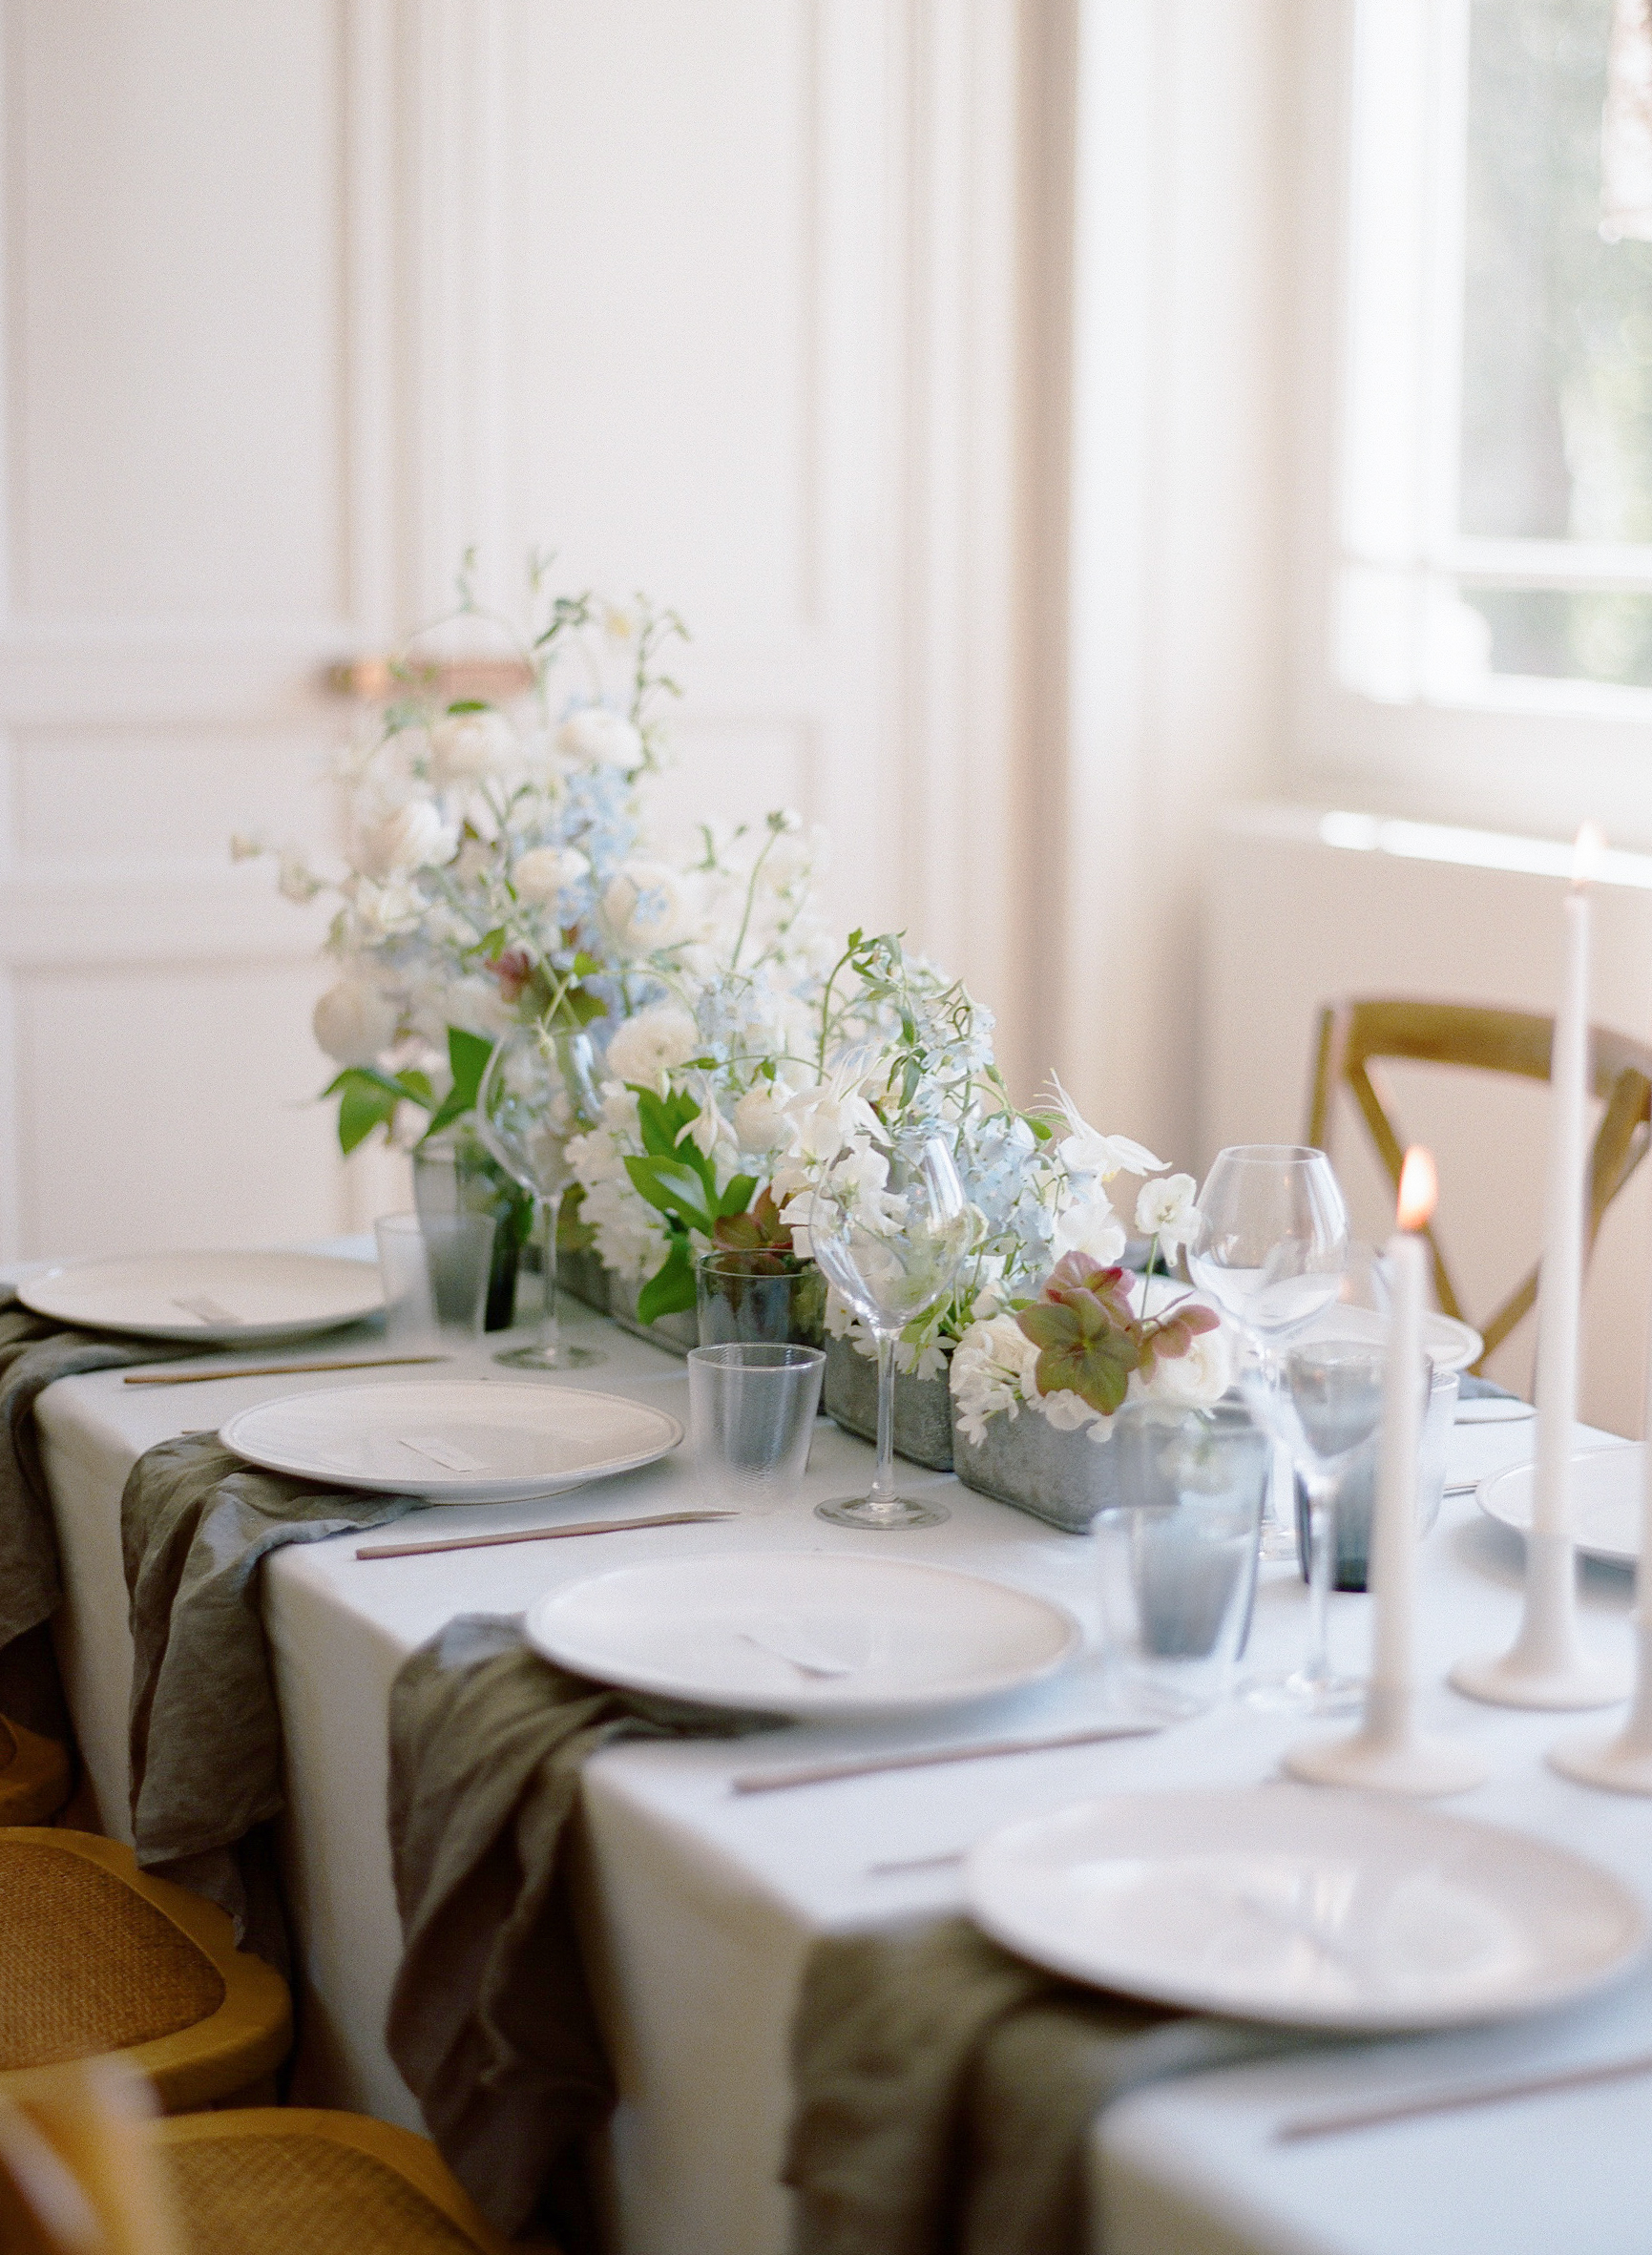 Styled reception table with concrete planters and simple linen napkins; Sylvie Gil Photography